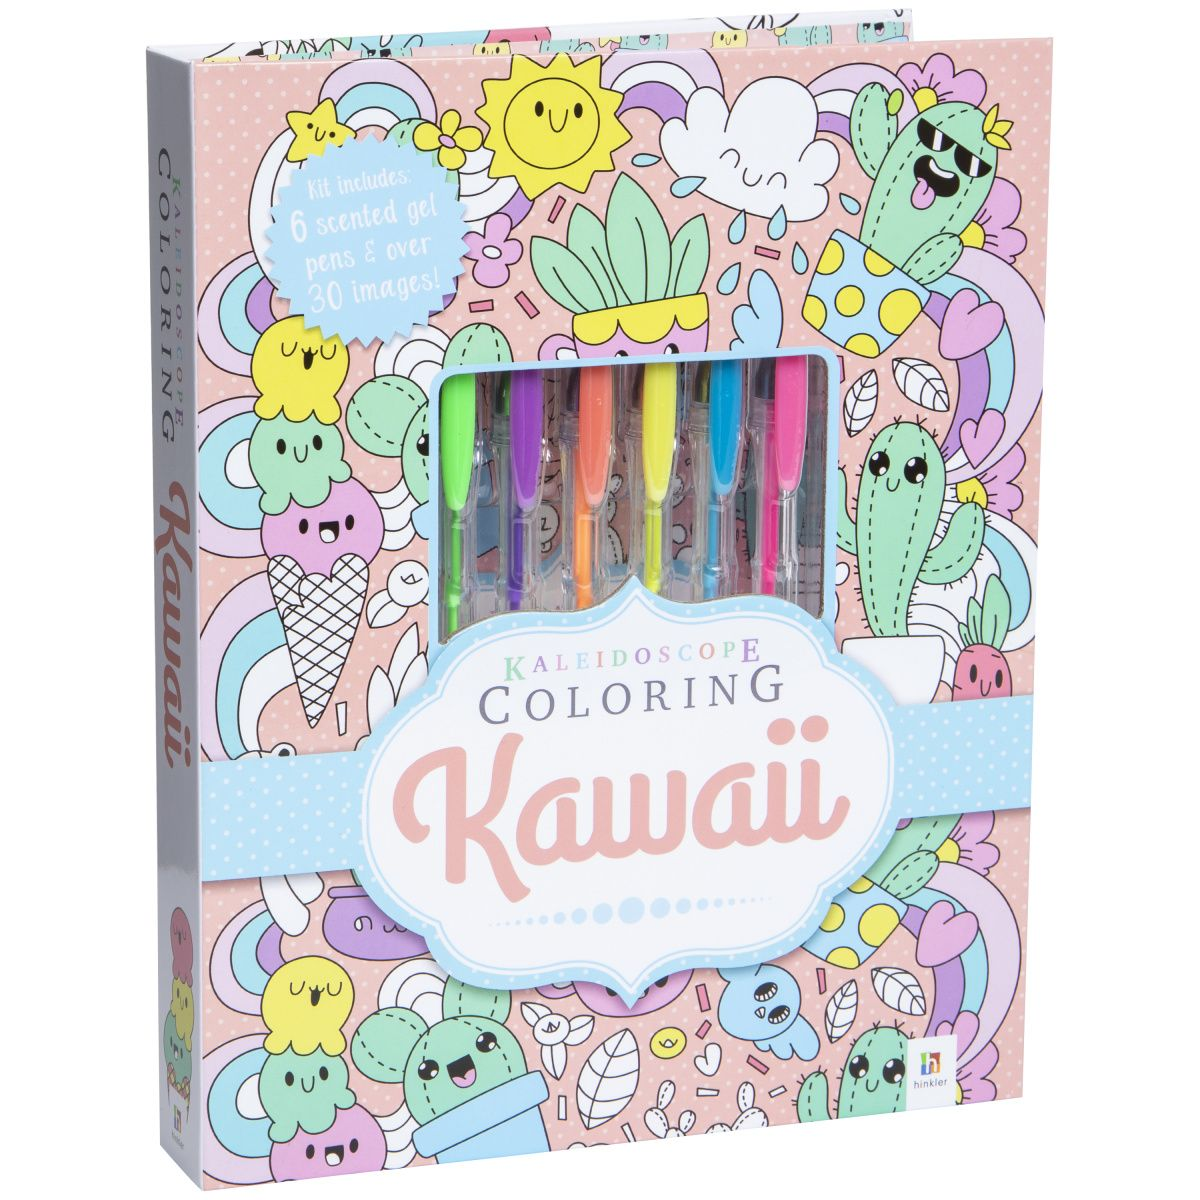 Kawaii Kaleidoscope Coloring Book Five Below Coloring Books Art And Craft Kit Kawaii